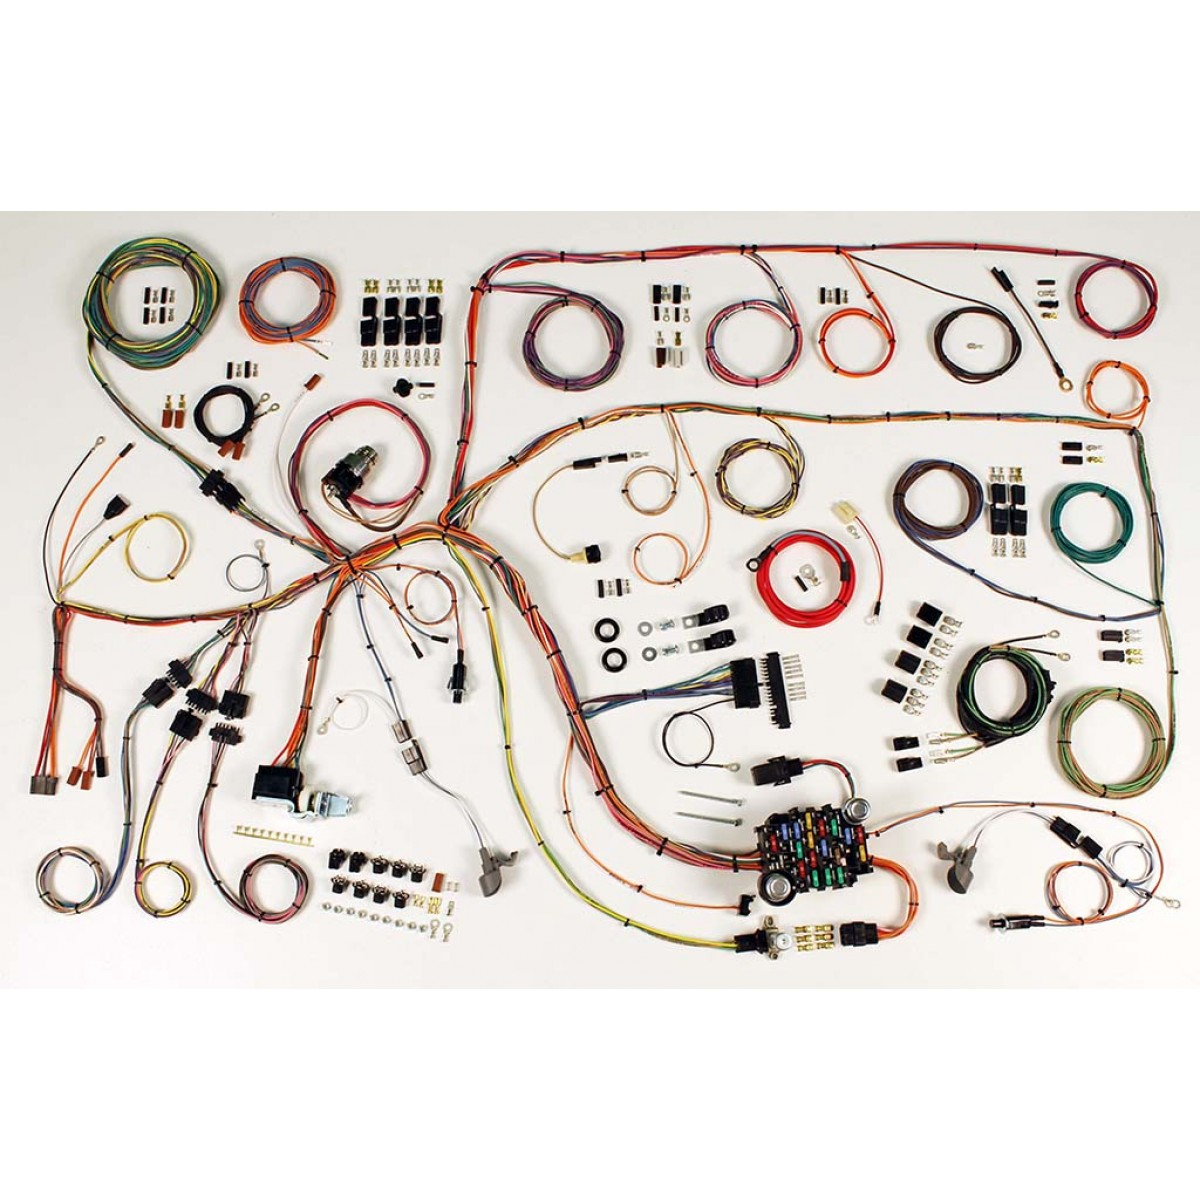 1965 F100 Wiring Harness Econoline Diagram Ford Falcon Complete Kit Part Rh Code510 Com Fairlane